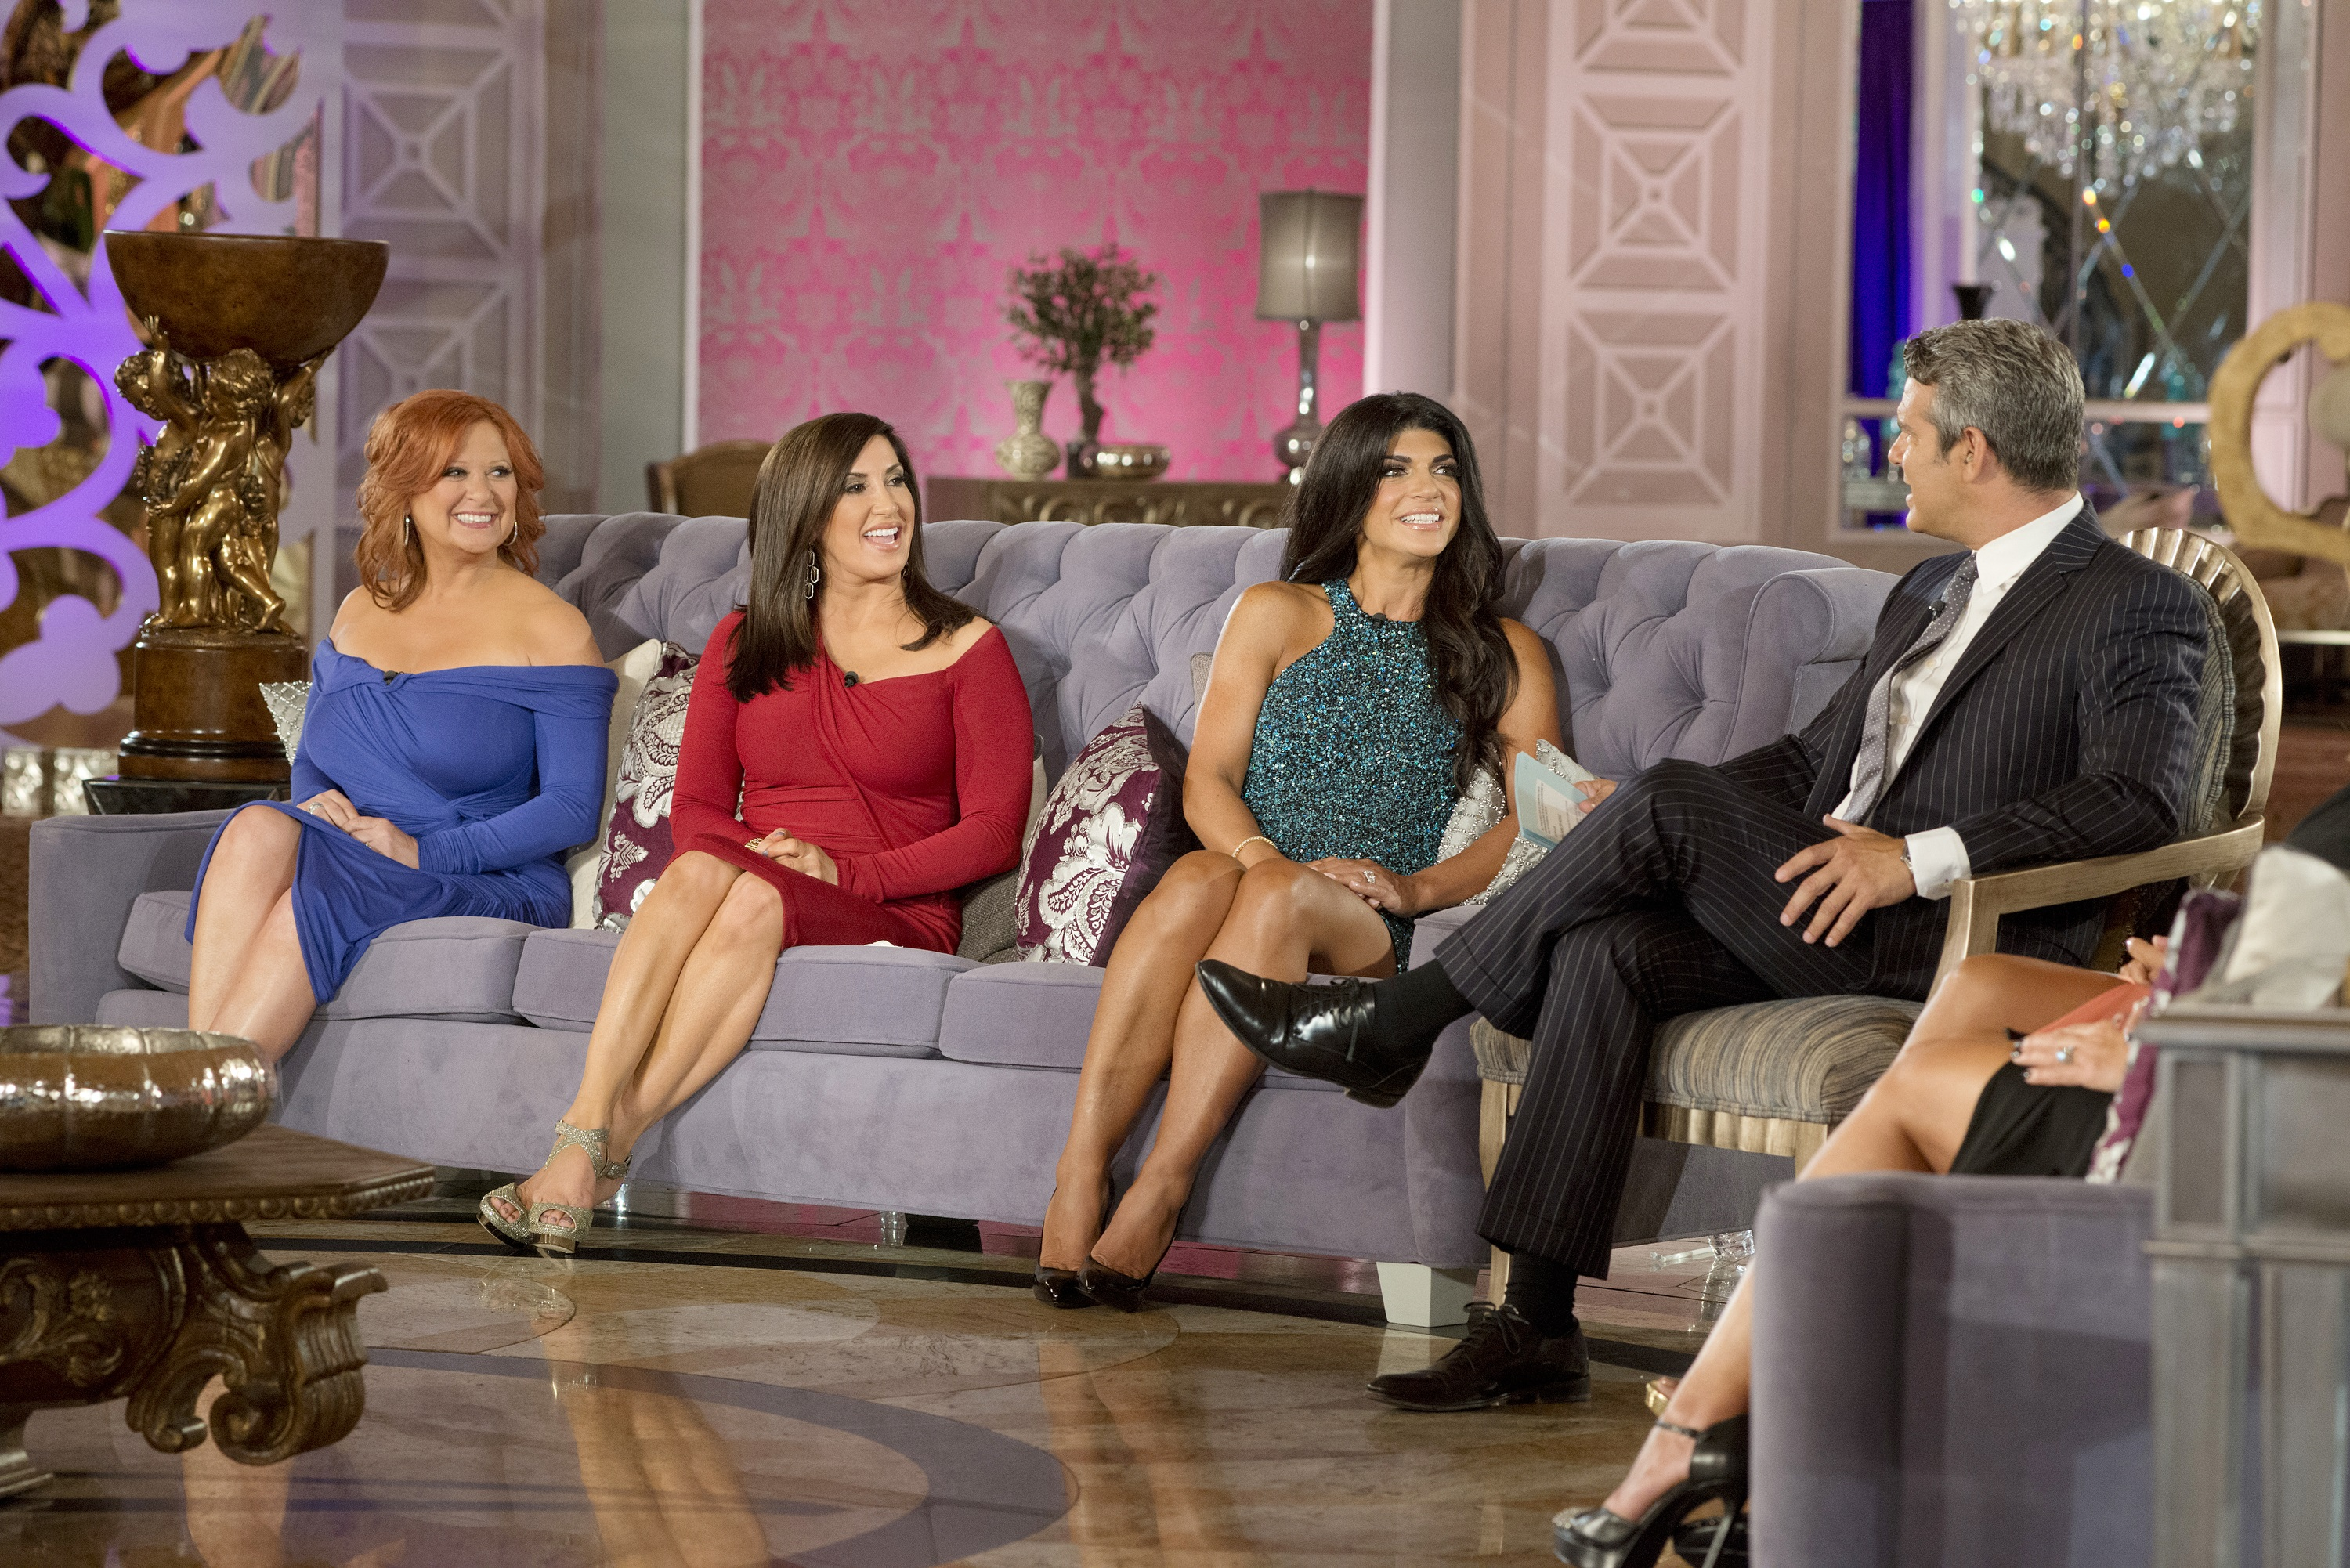 FOX Life-The Real Housewives of New Jerse y-Separados na Maternidade-15ABRIL2014-02